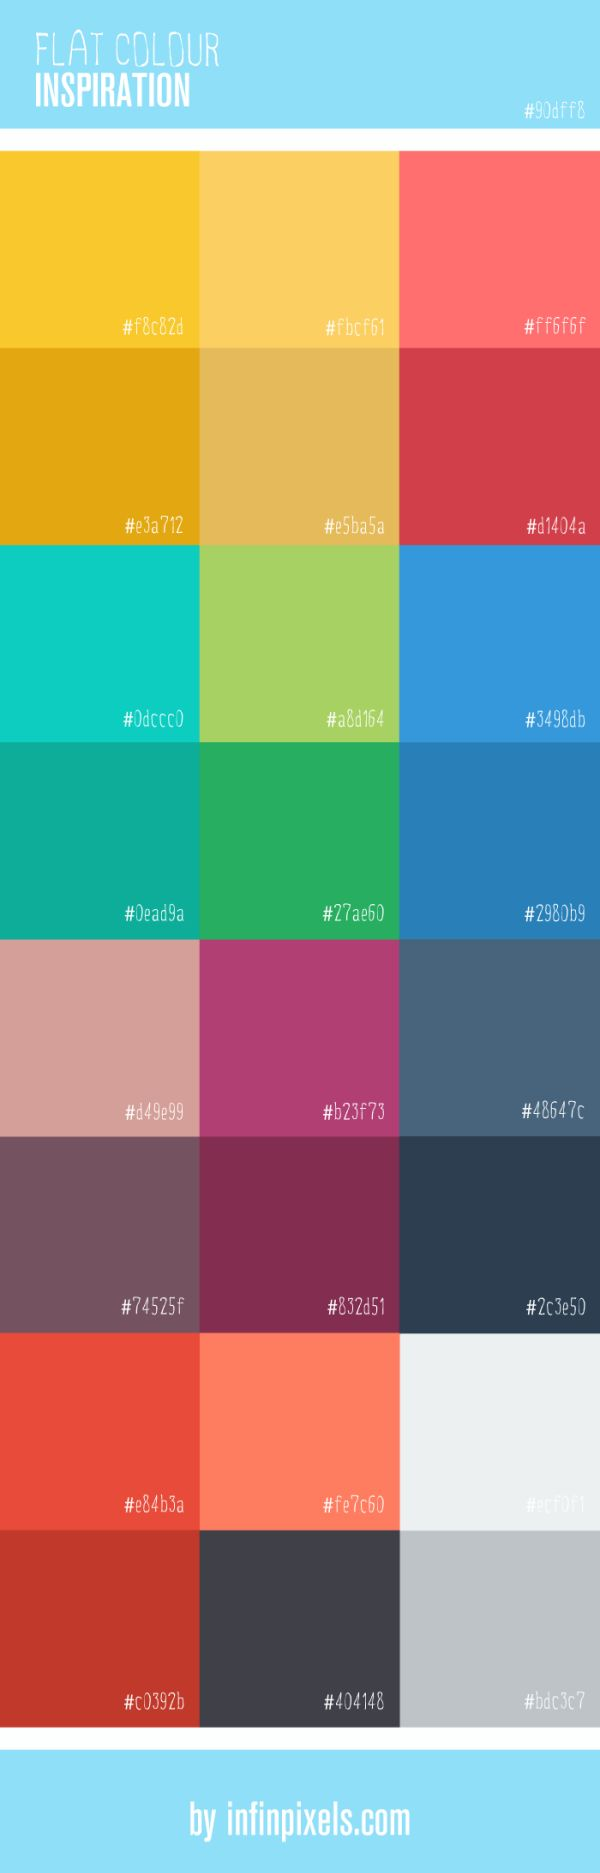 Flat Colour Inspiration for Web Design [Infographic]